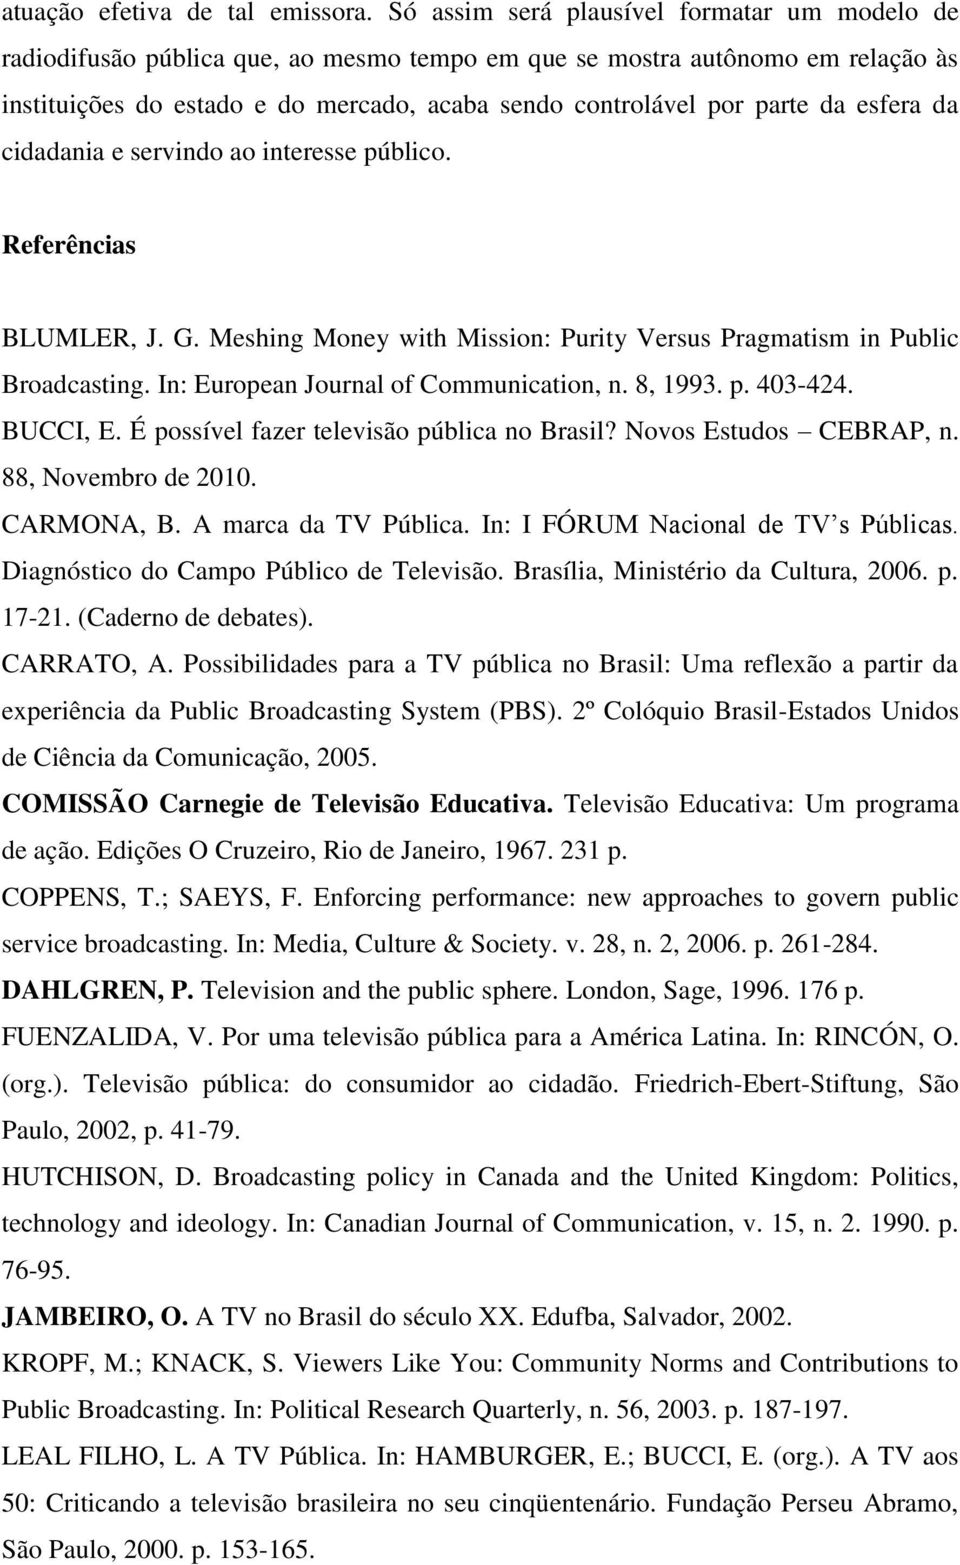 da esfera da cidadania e servindo ao interesse público. Referências BLUMLER, J. G. Meshing Money with Mission: Purity Versus Pragmatism in Public Broadcasting.